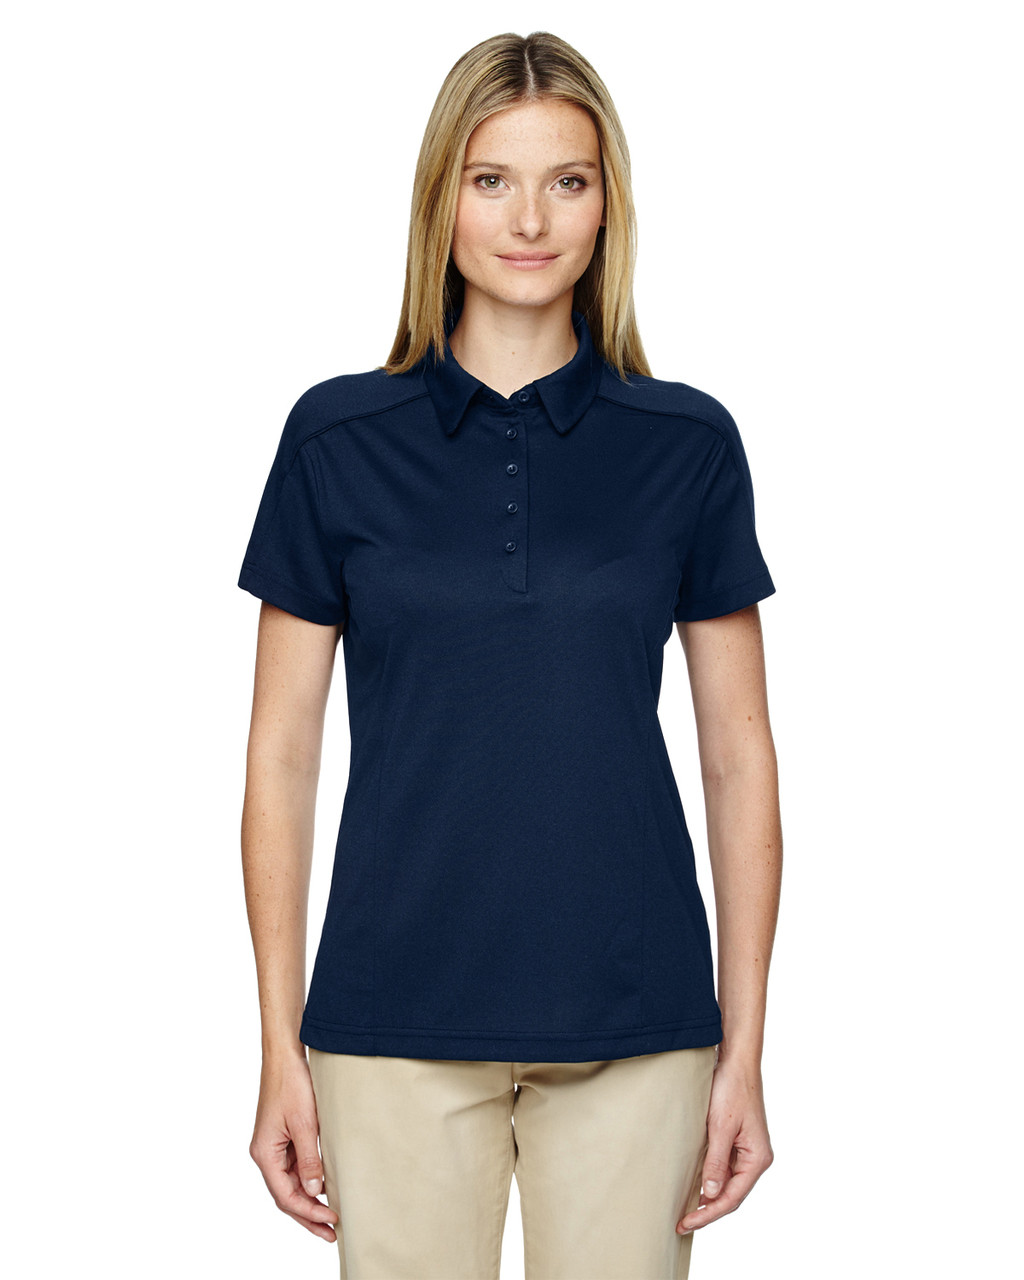 Night 75117 Ash City - Extreme Eperformance Mélange Polo Shirt